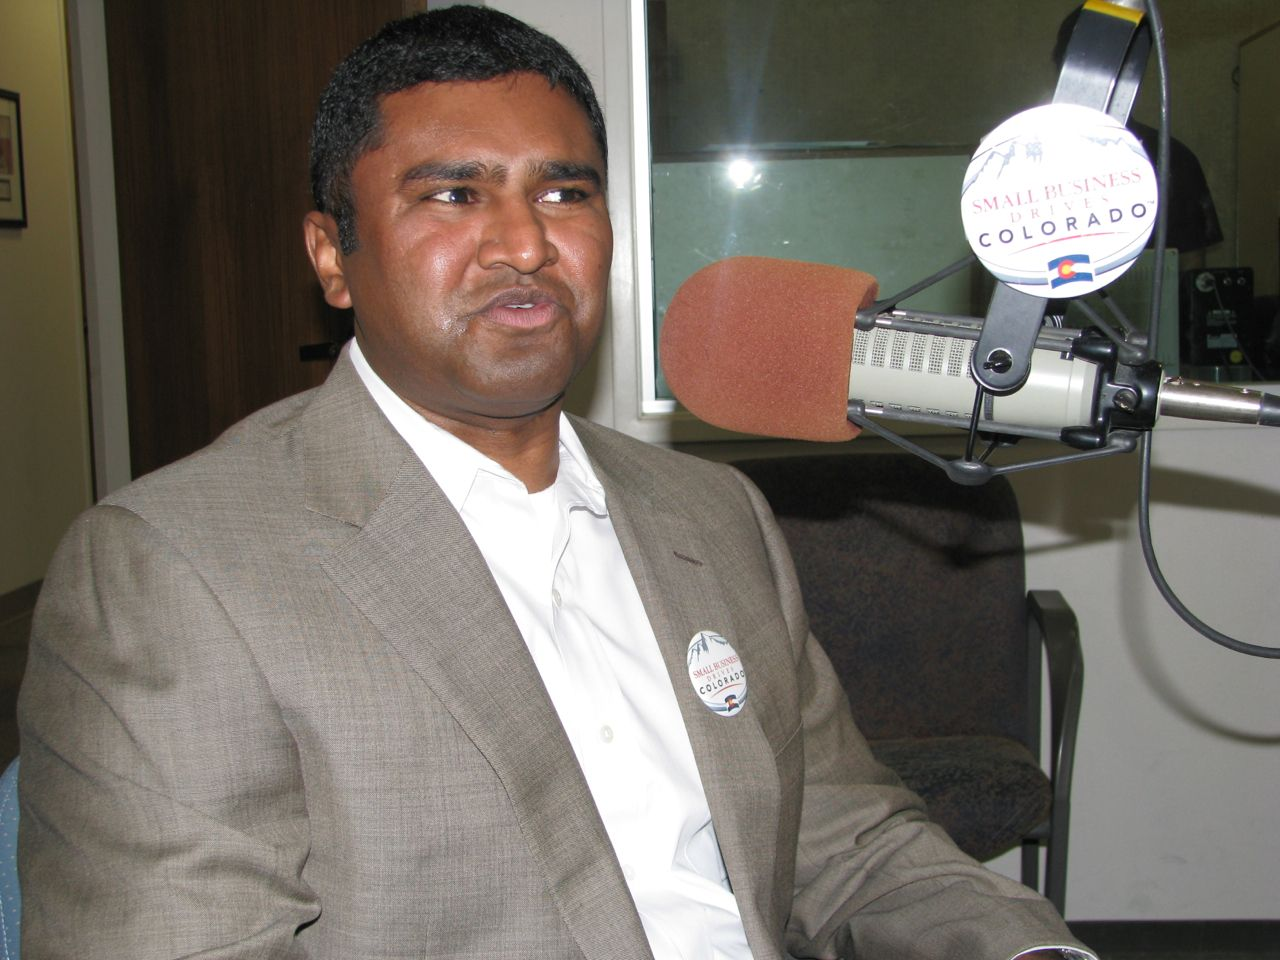 Murugan Palani, is manager of supplier diversity at Xcel Energy.  He was a guest on the August 11, 2013 edition of Business Unconventional.